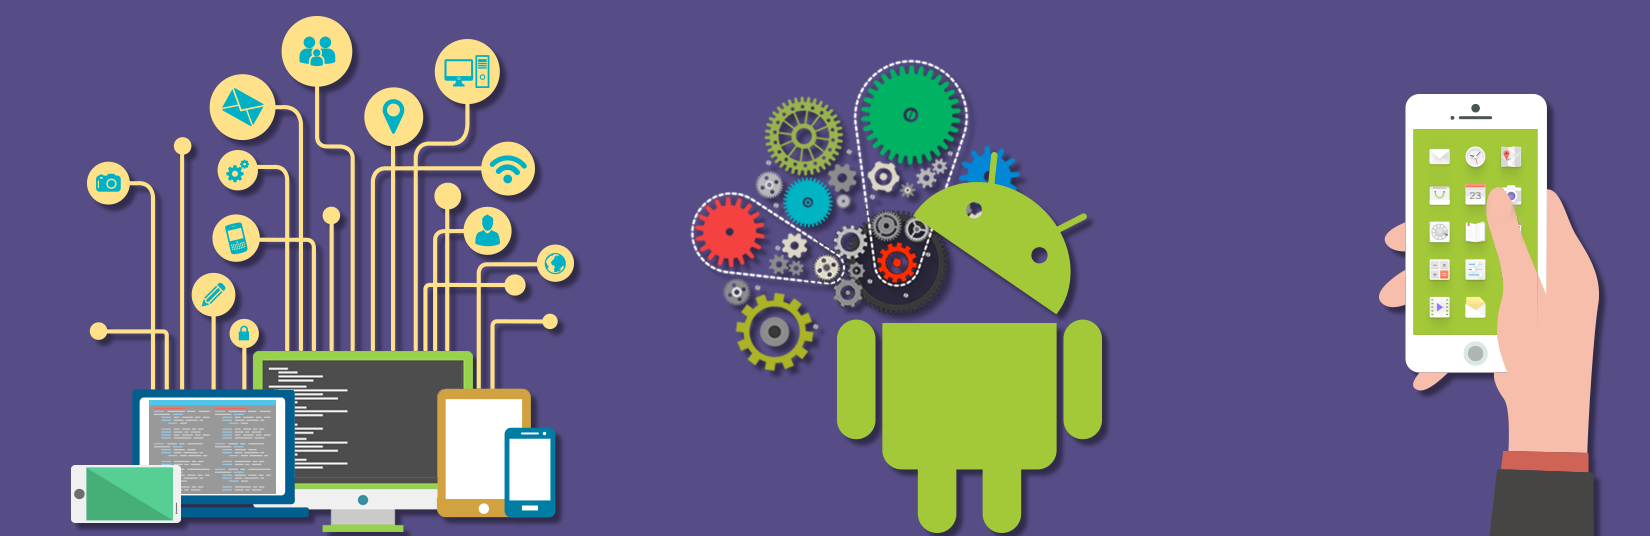 Android Mobile Application Development, Android Application Development, Android Development